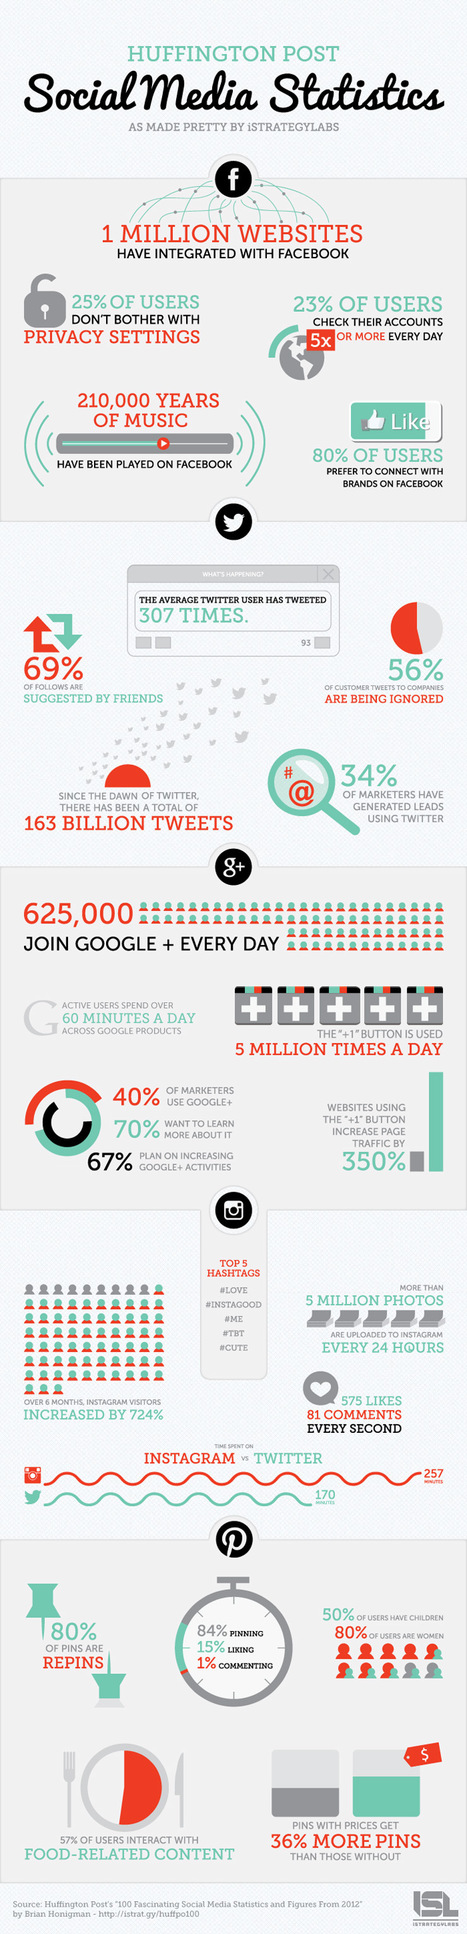 The Amazing Social Media Statistics 2012 – infographic /@BerriePelser | digital marketing strategy | Scoop.it